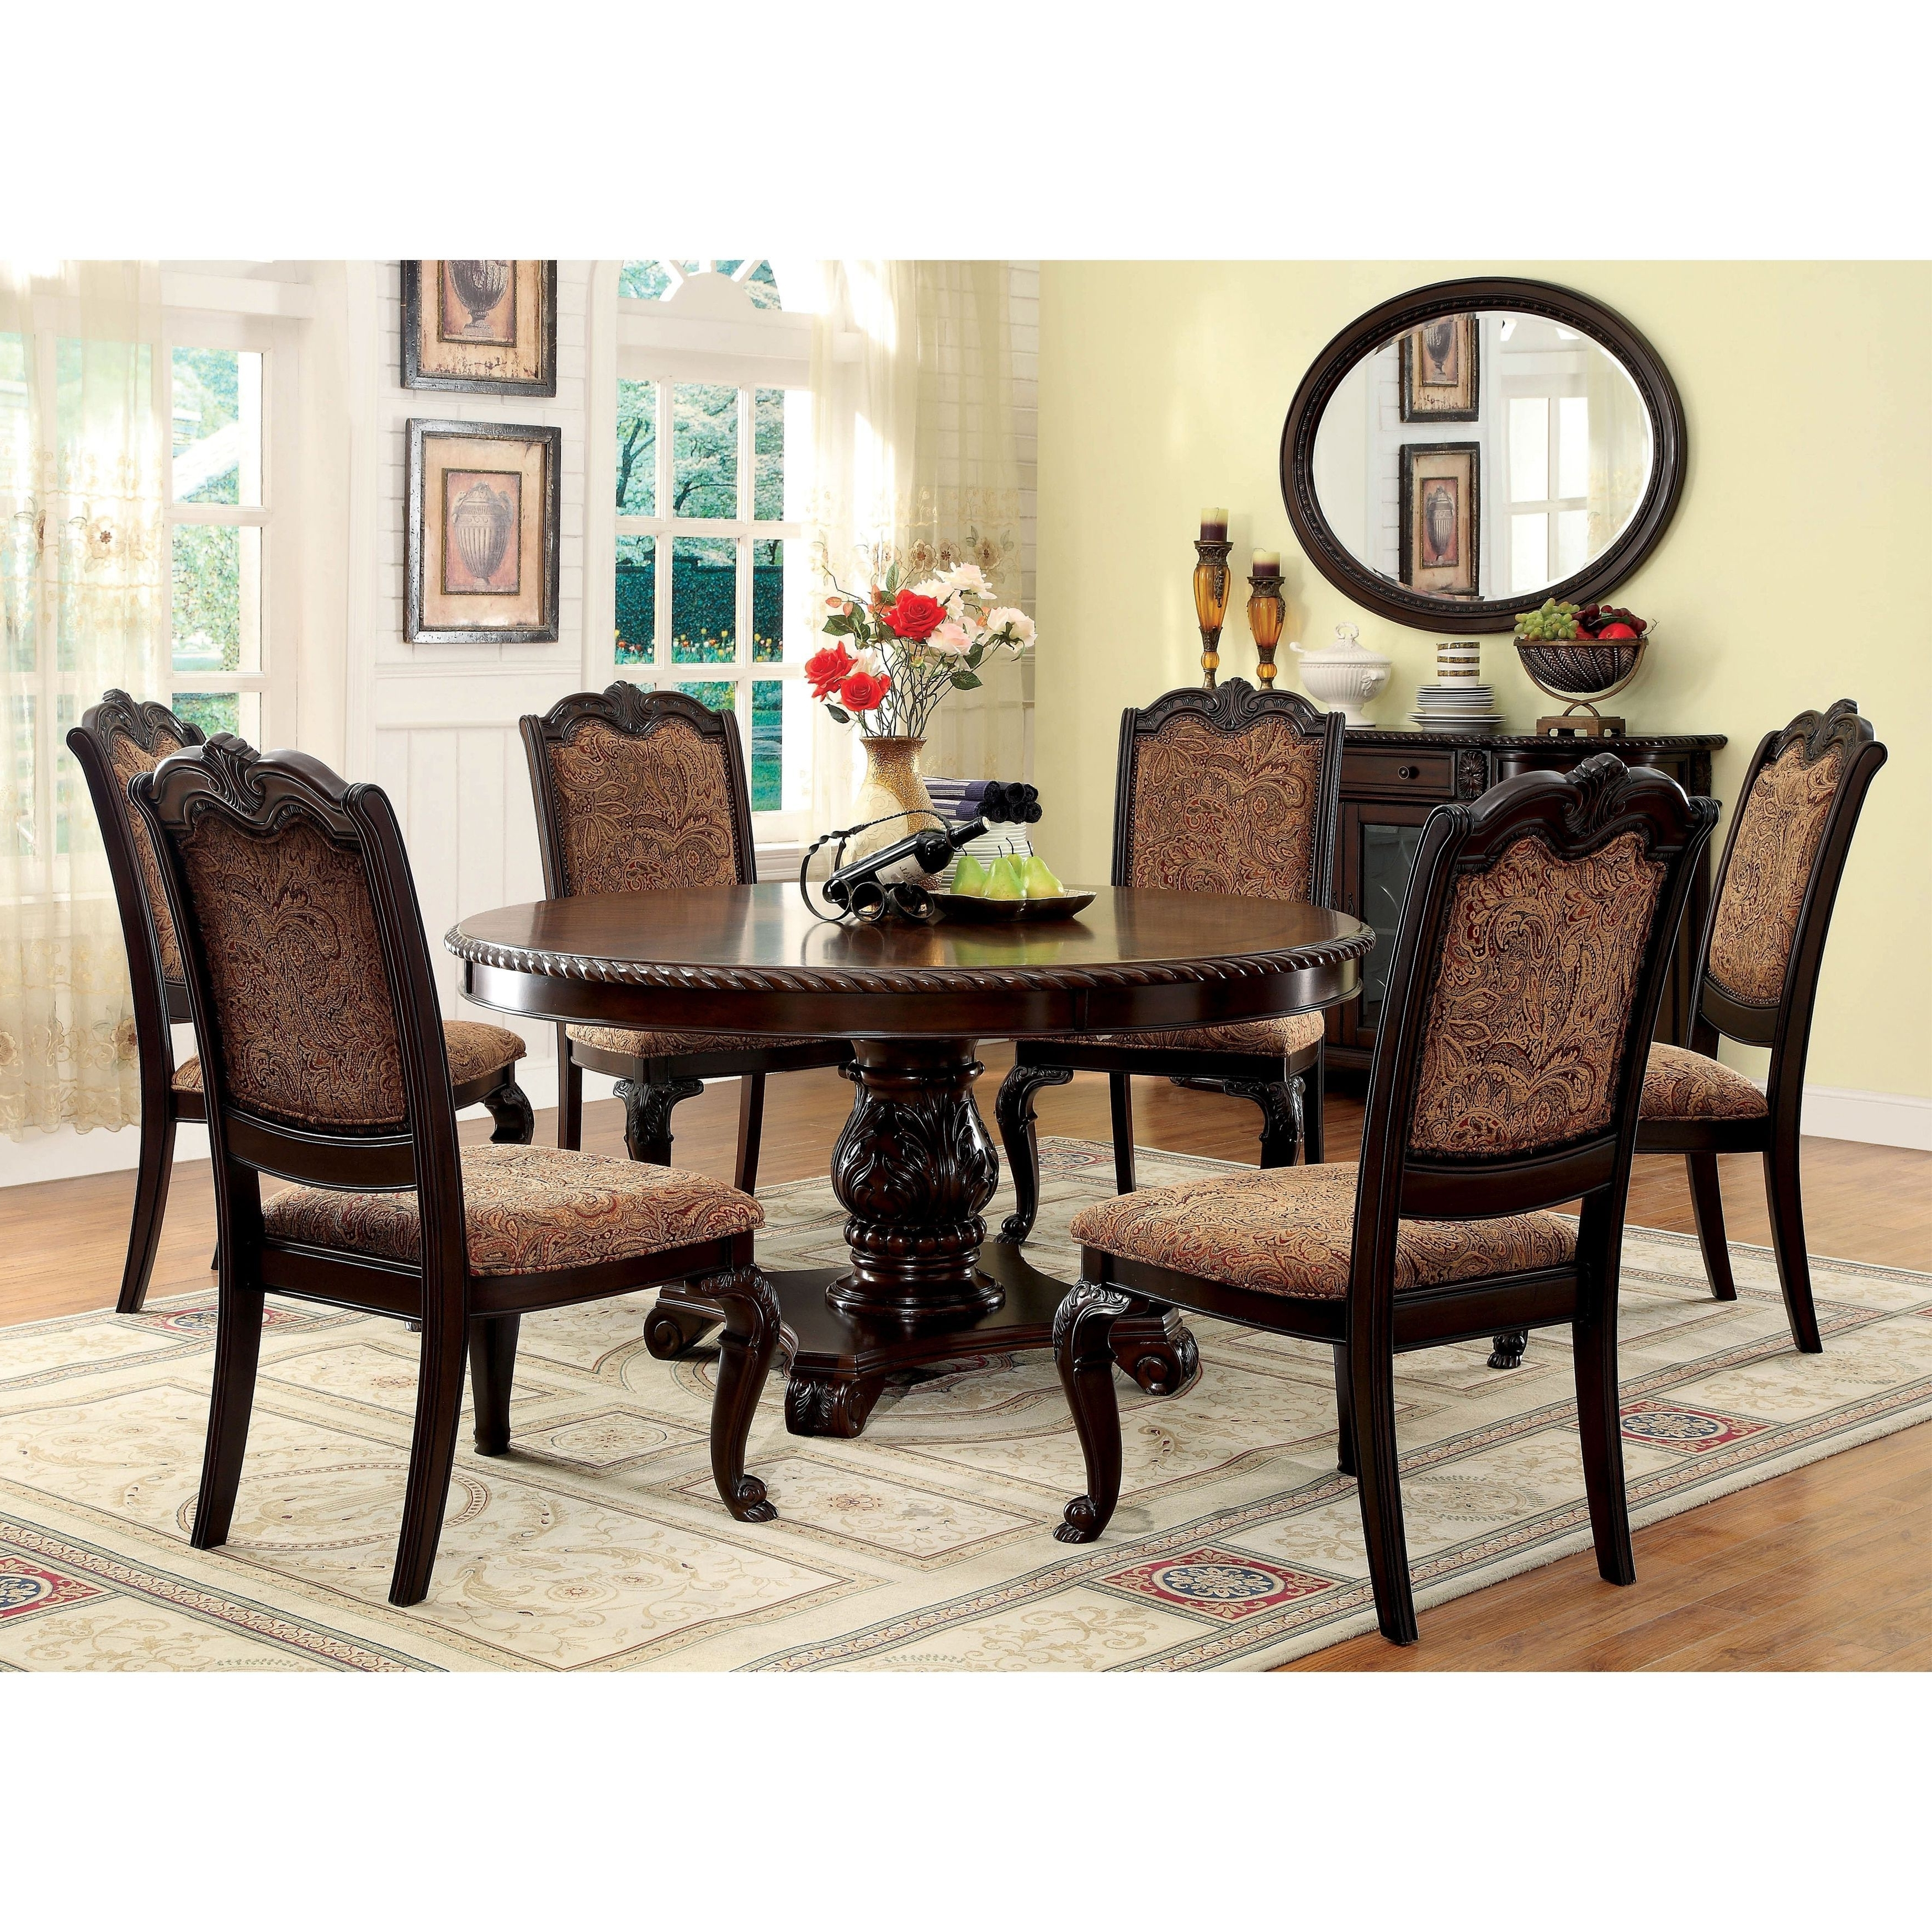 Furniture Of America Oskarre Iii Brown Cherry (Red) 7 Piece Formal Within Current Valencia 72 Inch 7 Piece Dining Sets (View 6 of 25)